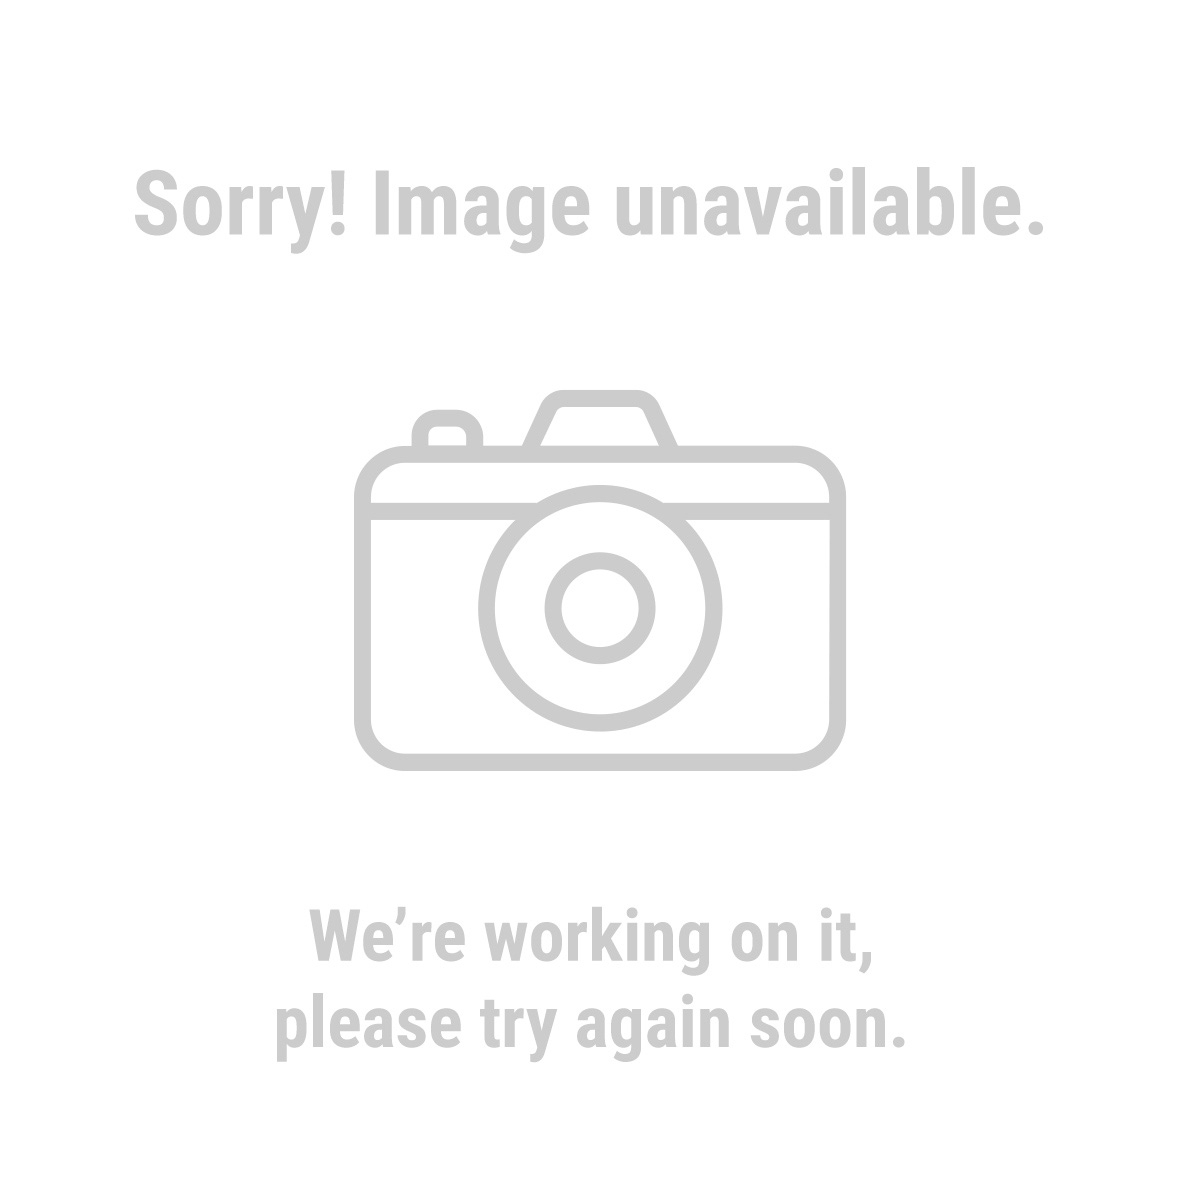 Predator Generators 69671 420cc, 8750 Watts Max/7000 Watts Rated Portable Generator